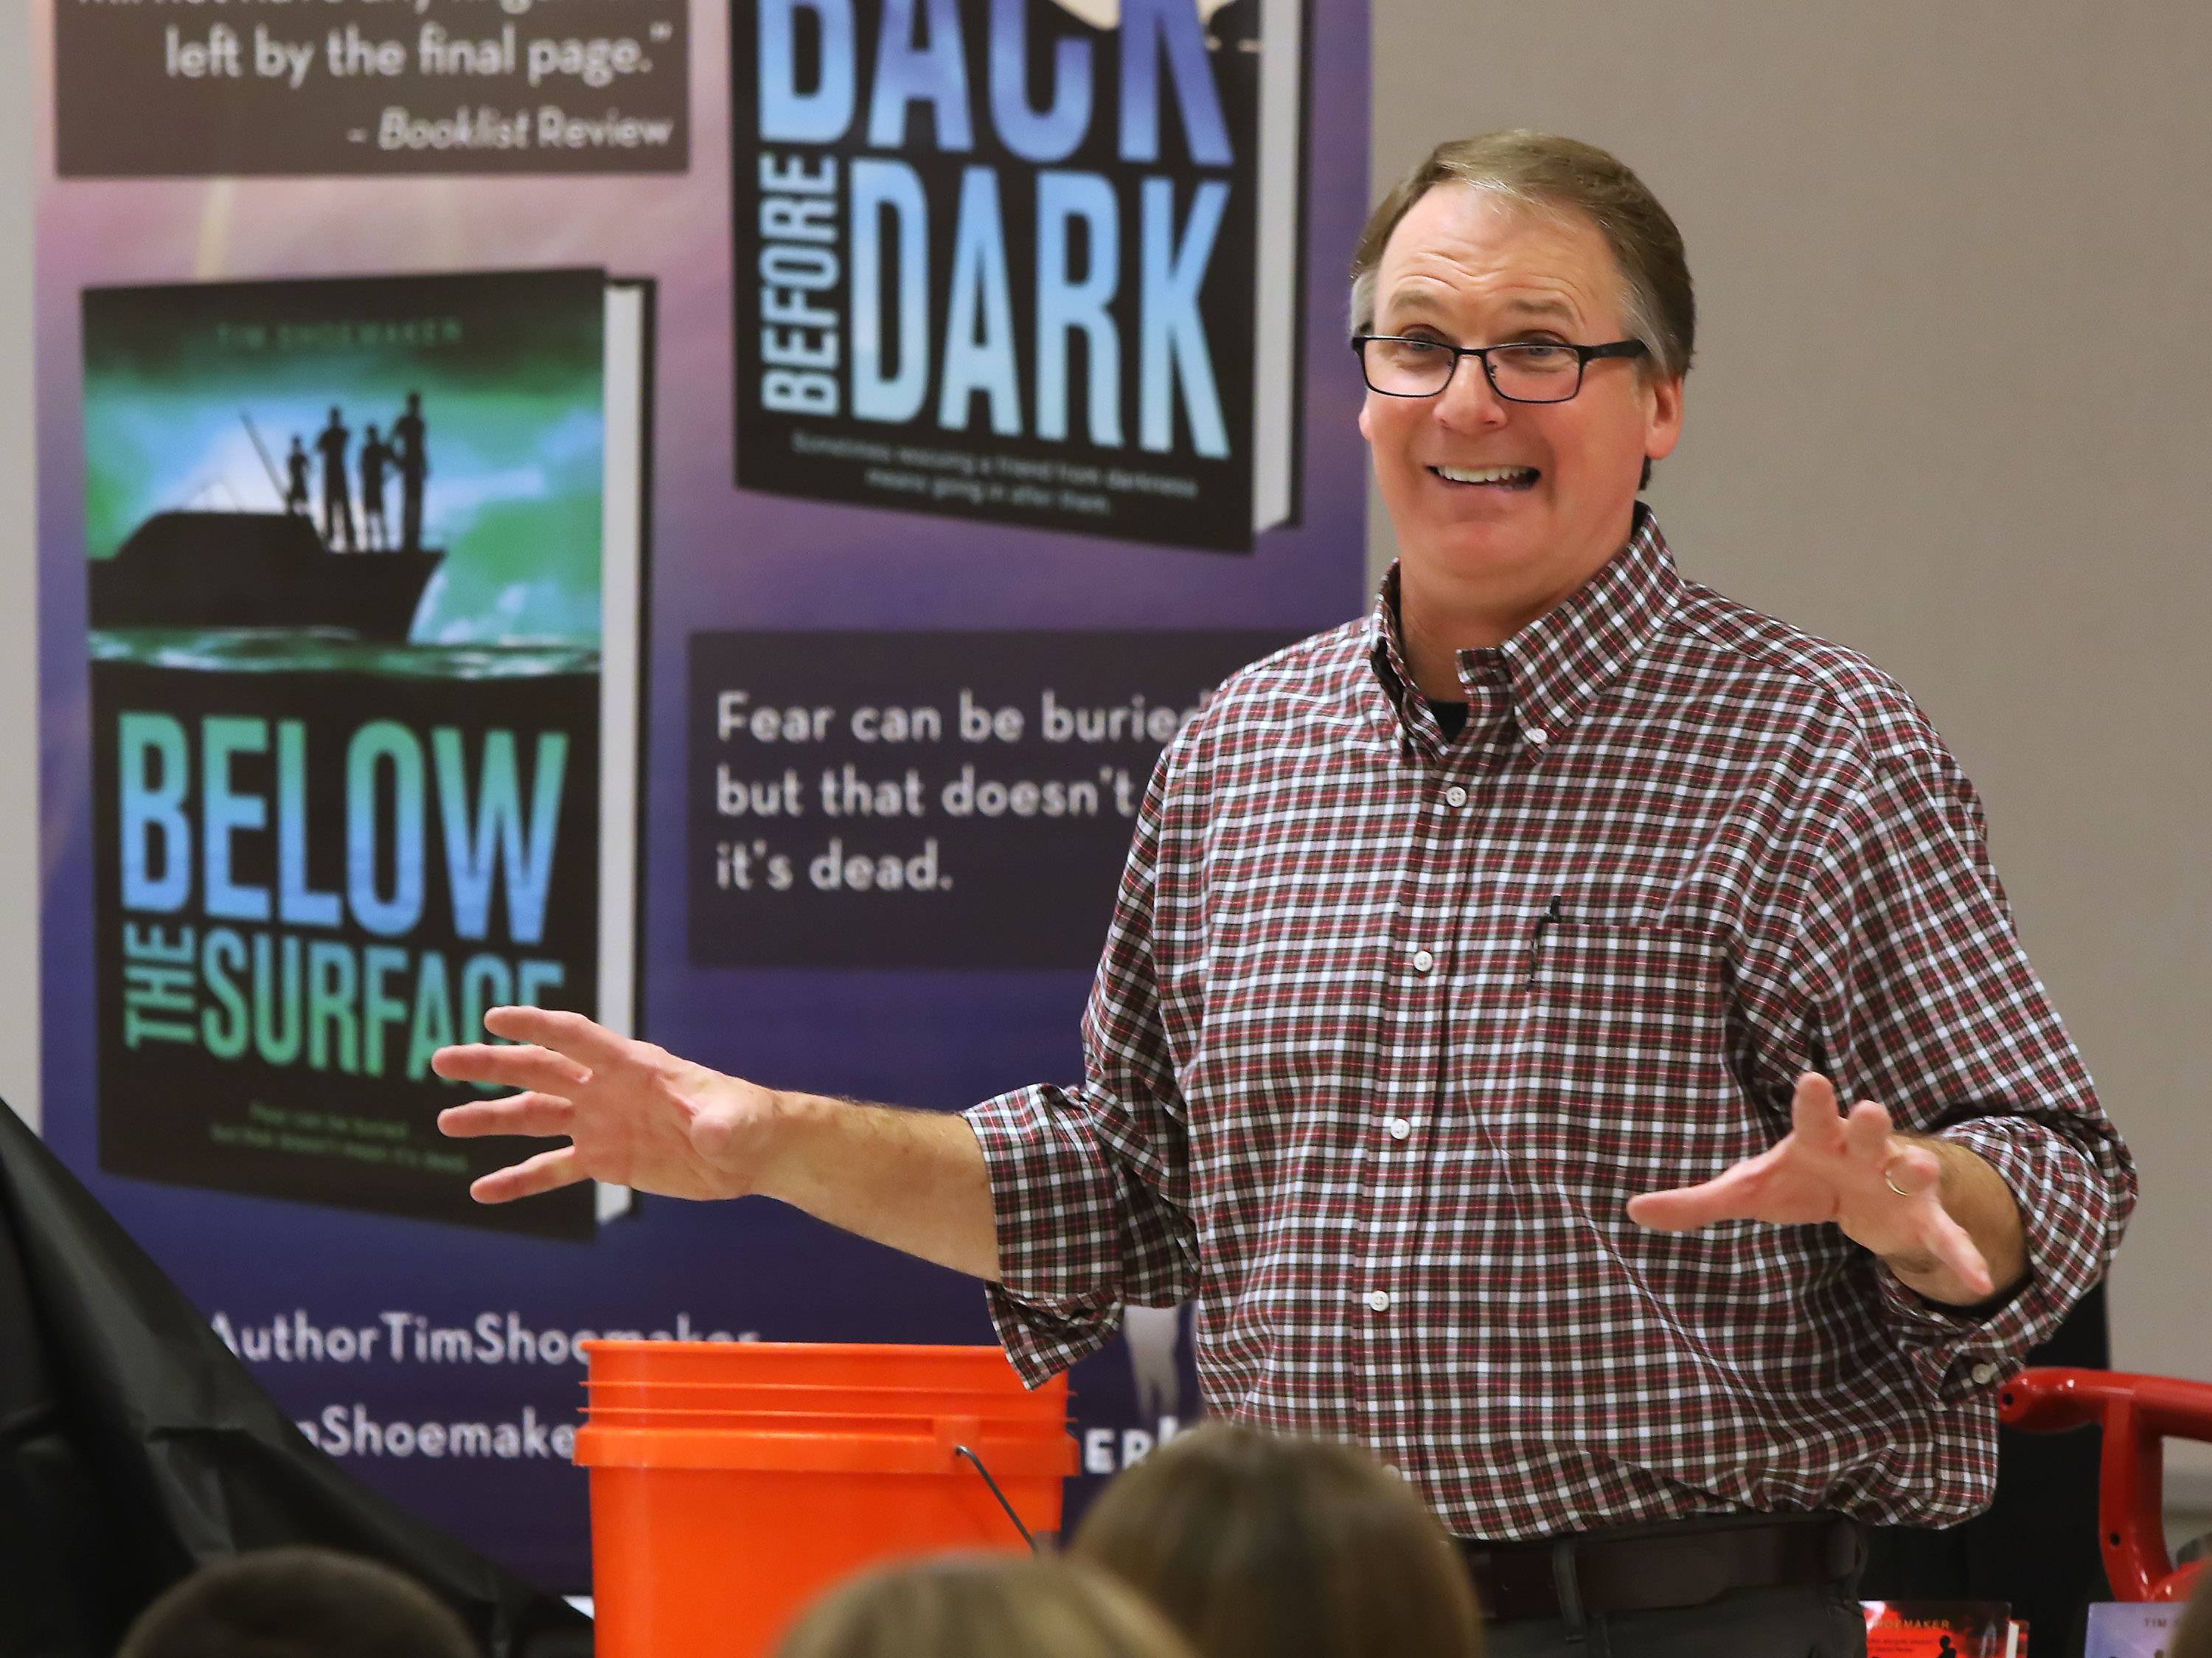 Author Tim Shoemaker speaks to students about being a hero Tuesday at Stanton School in Fox Lake. Shoemaker writes mystery books intended for middle school students.